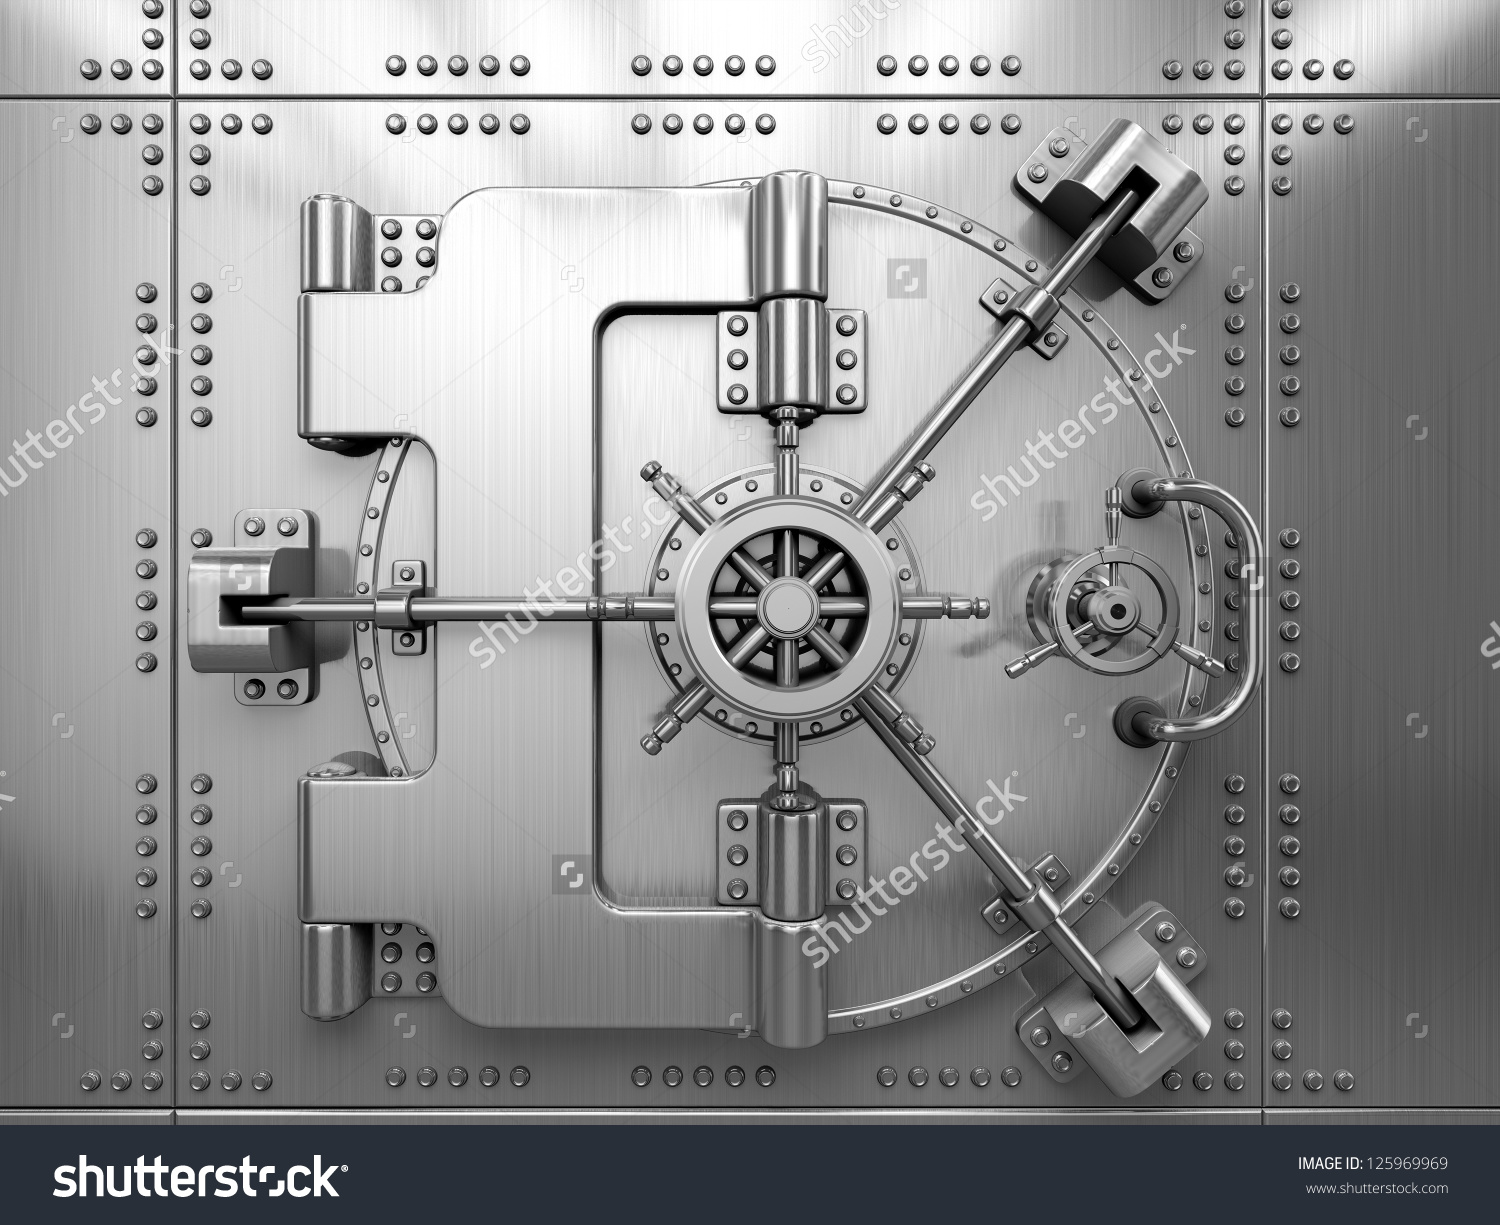 Bank vault door clipart png royalty free stock Bank Vault Door Stock Illustration 125969969 - Shutterstock png royalty free stock